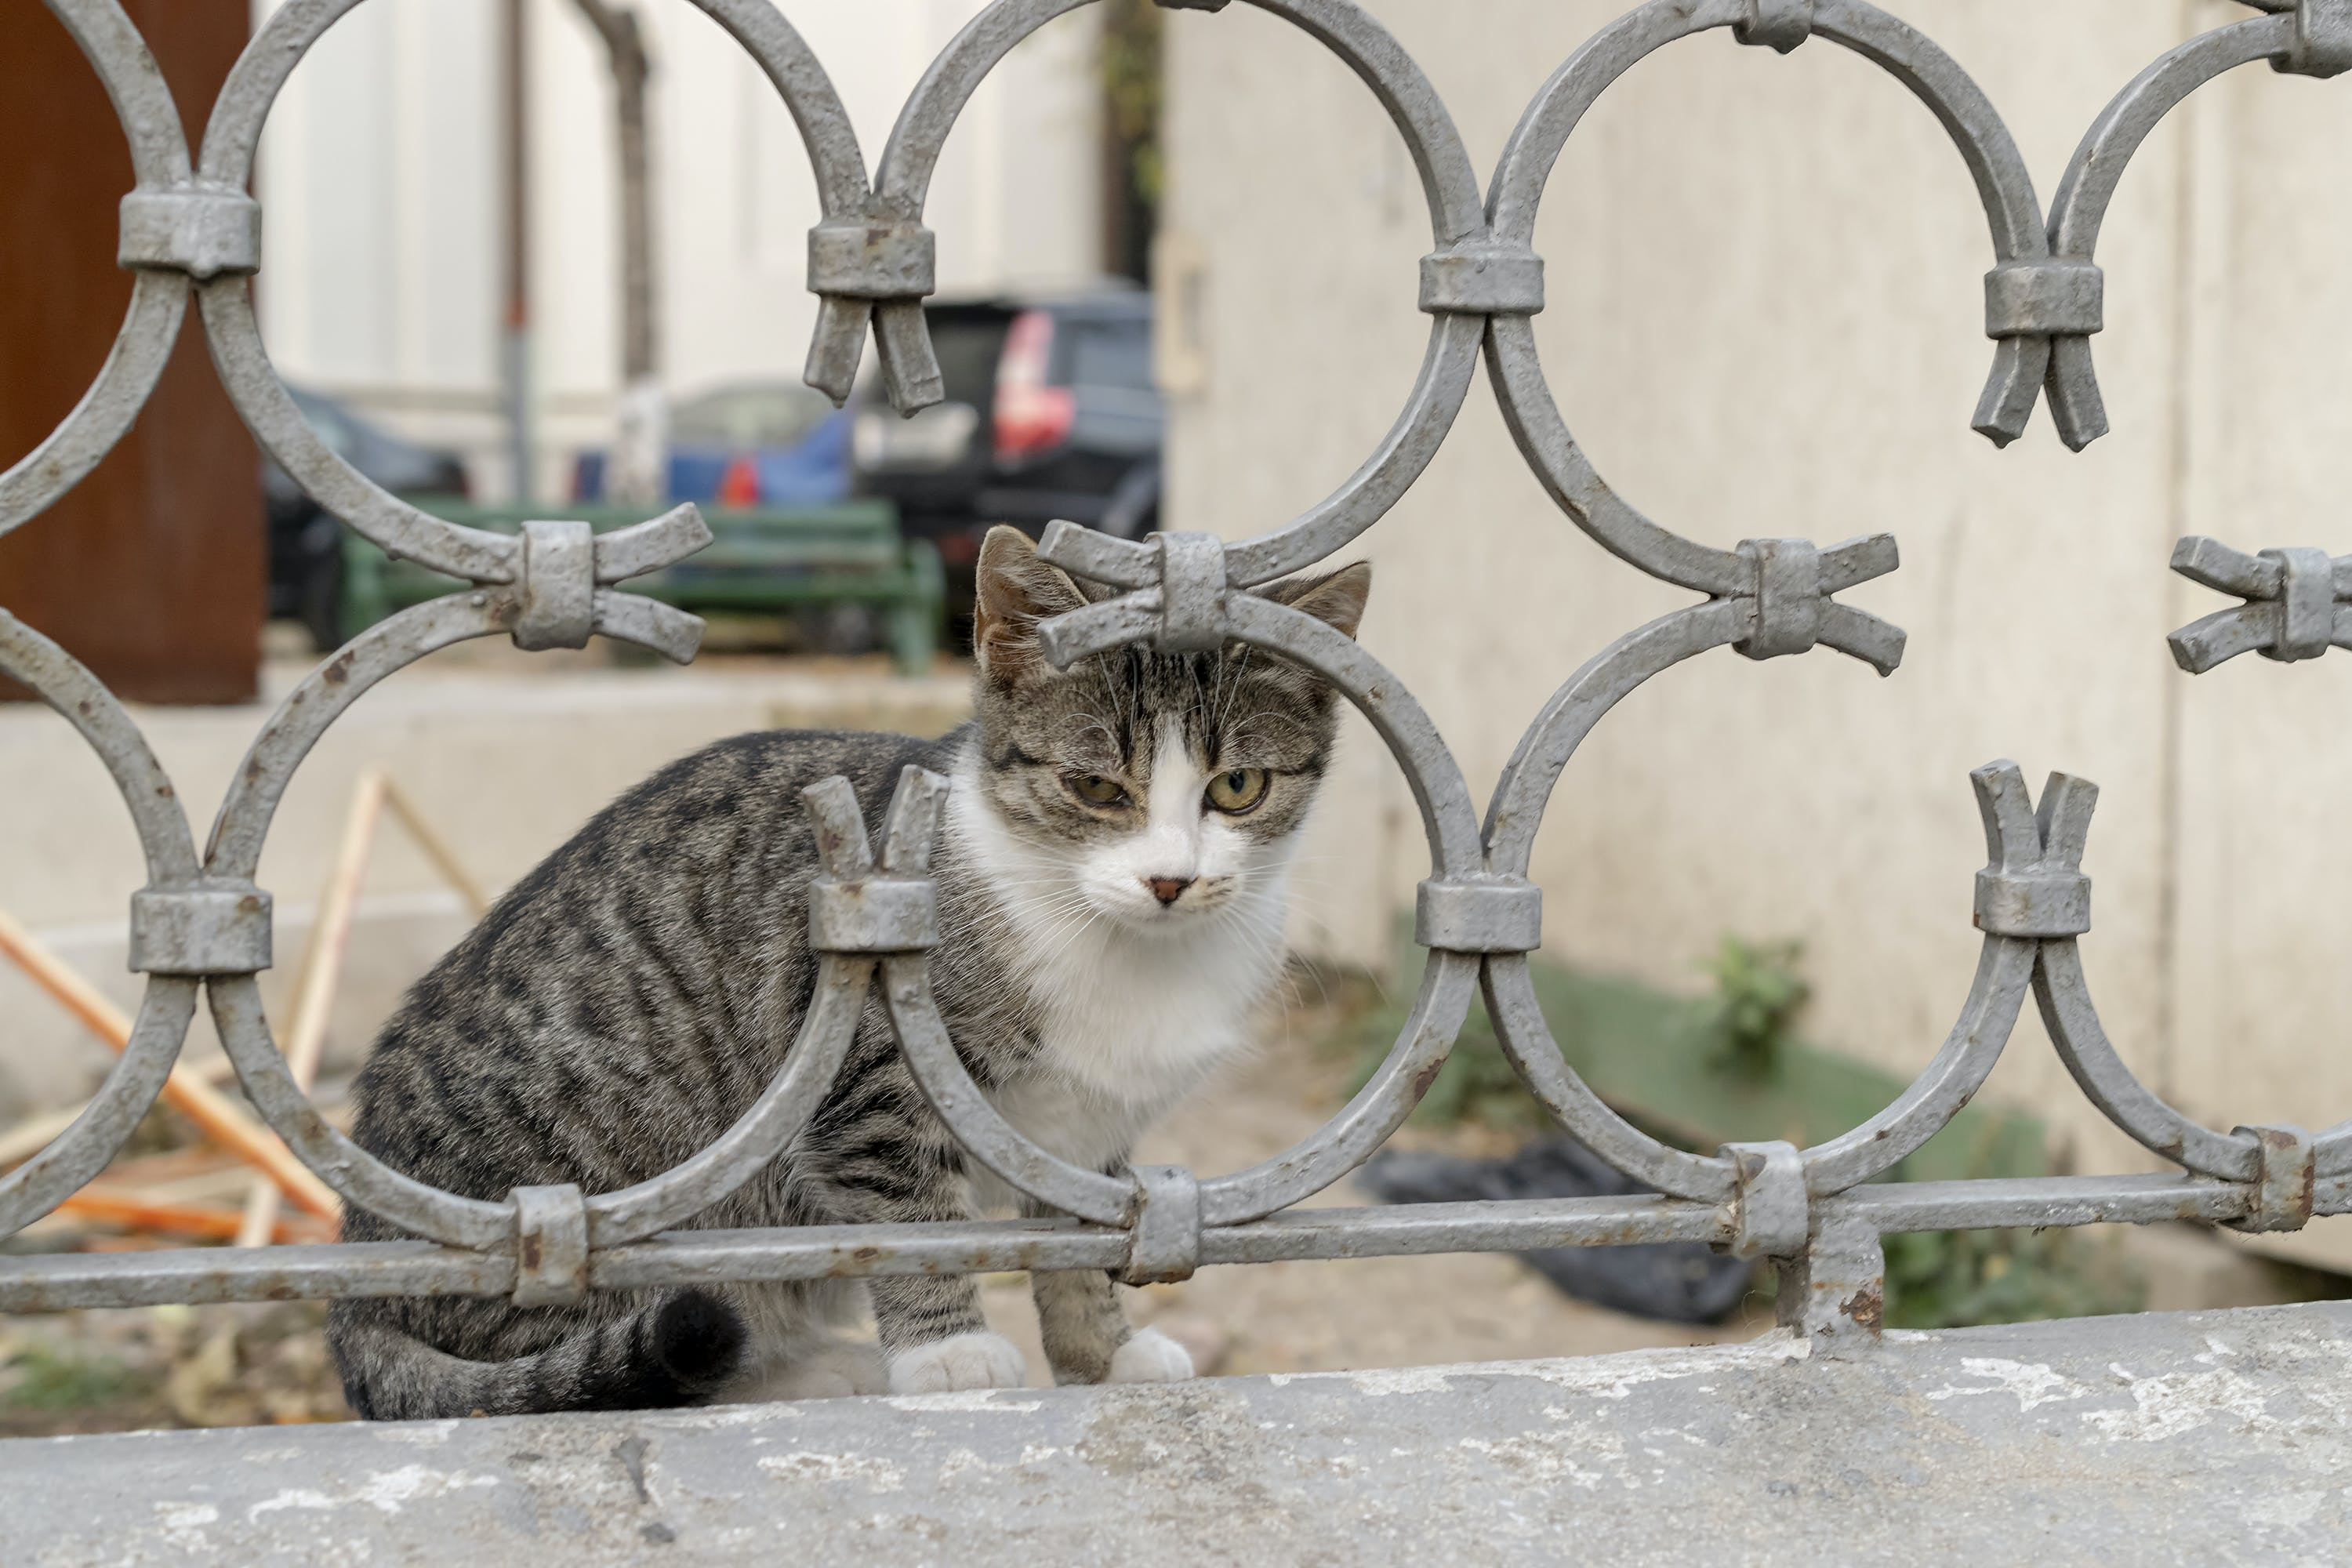 Free stock photo of cat after a metal fence, street photography